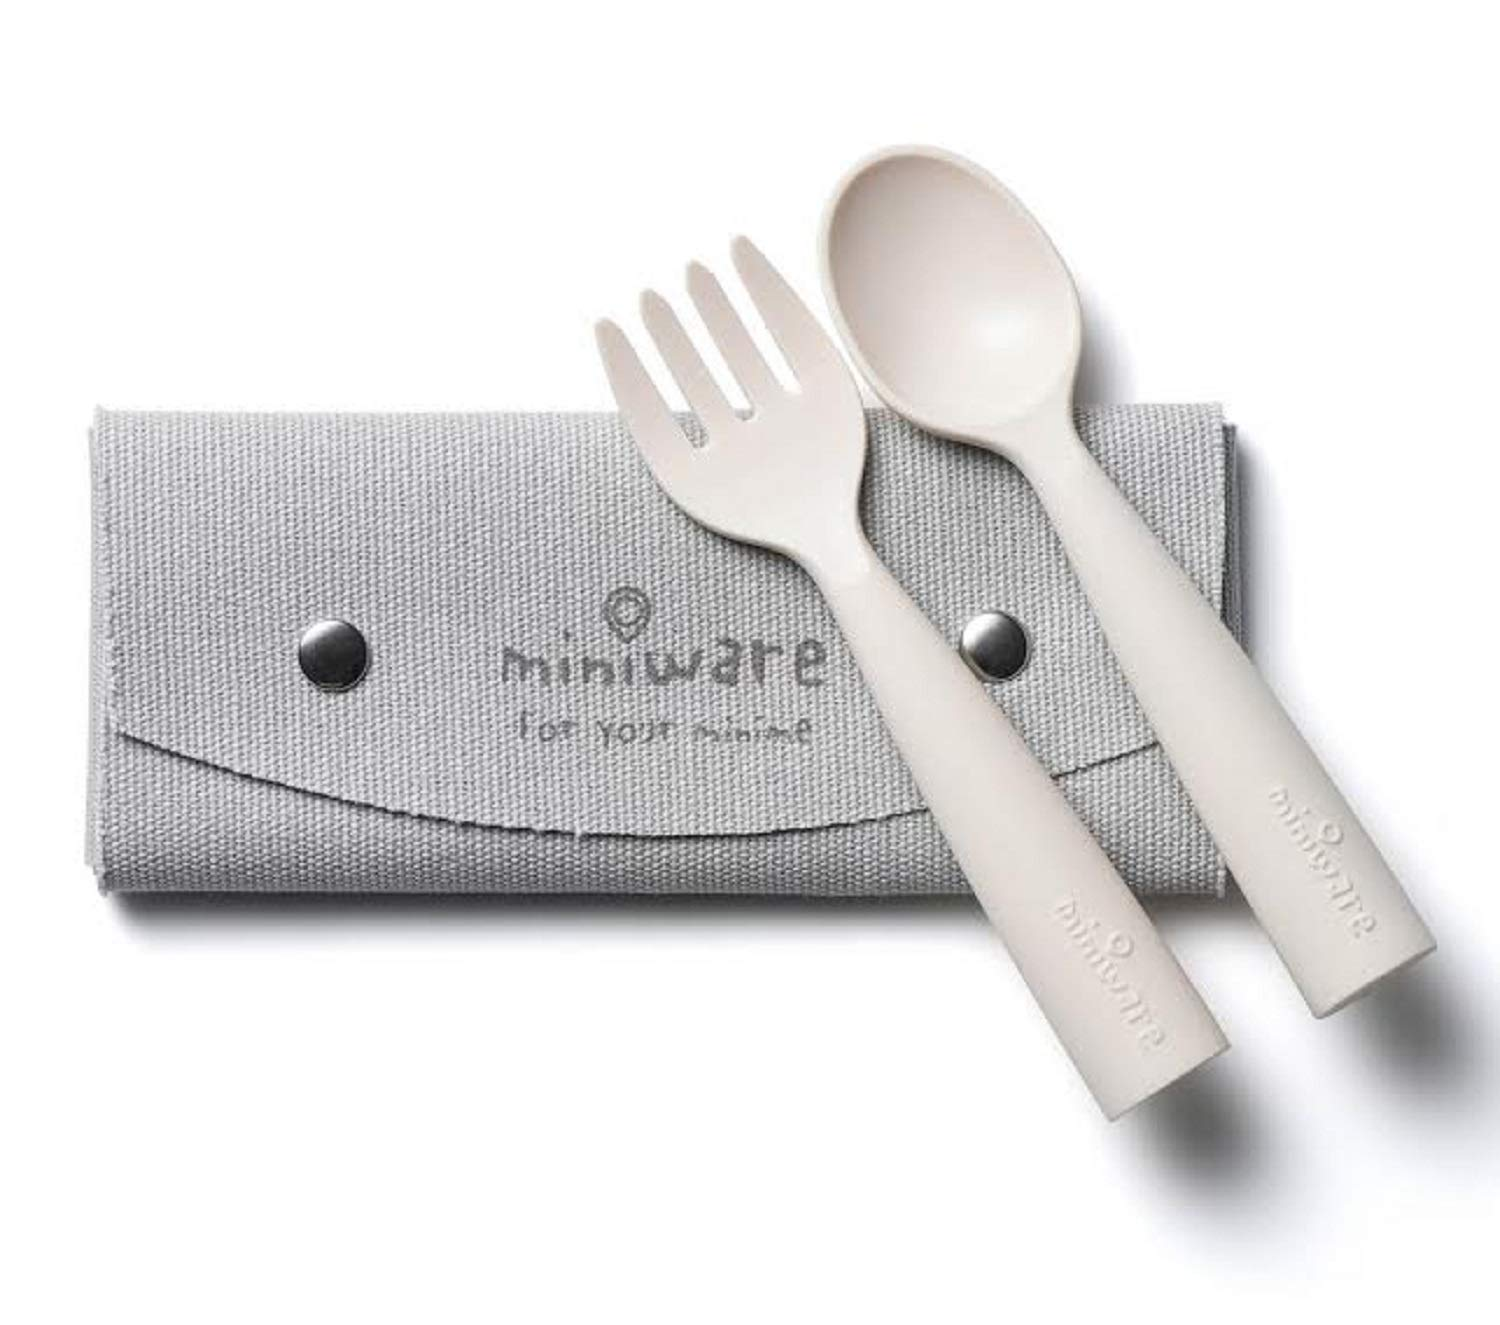 Miniware My First Cutlery Set with Training Spoon, Fork, and Carry Case for Baby Toddler Kids – Promotes Self Feeding | Eco-Friendly Utensils | Modern and Durable Design | Dishwasher Safe